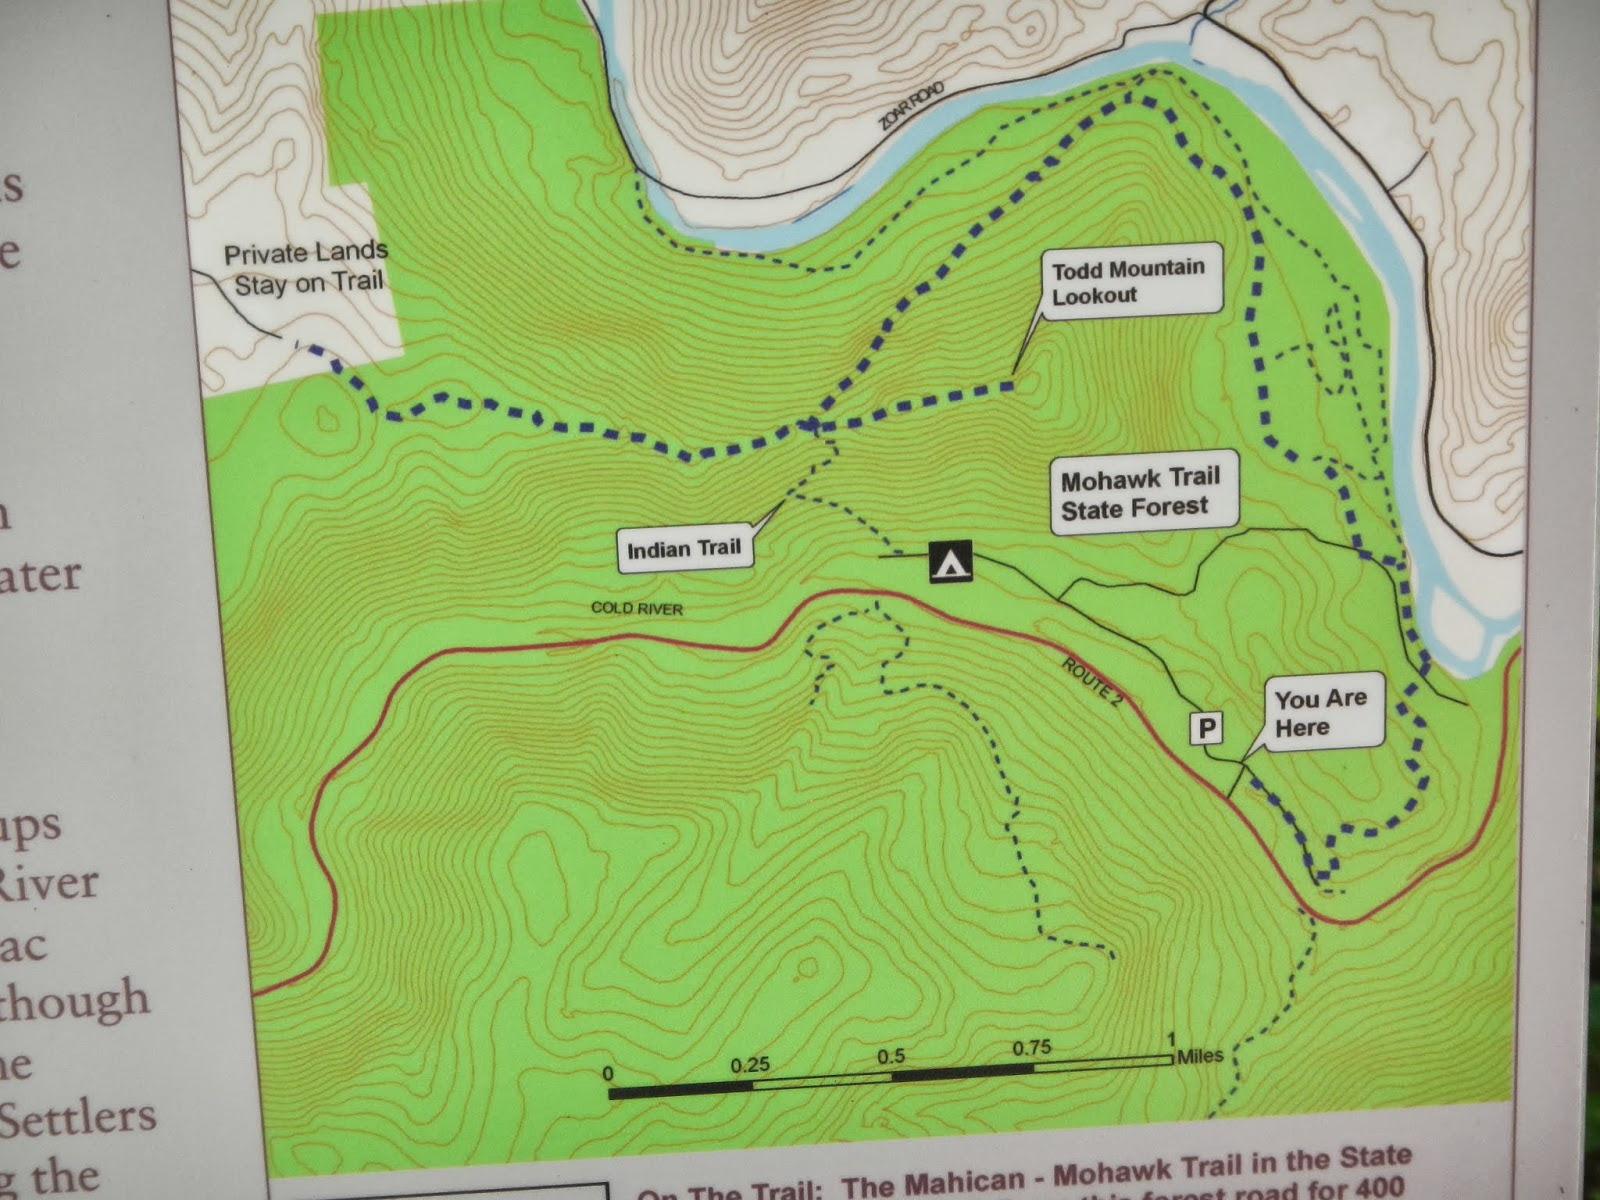 Mahican Mohawk Trail Maps Other Trails in Mohawk Trail State Forest